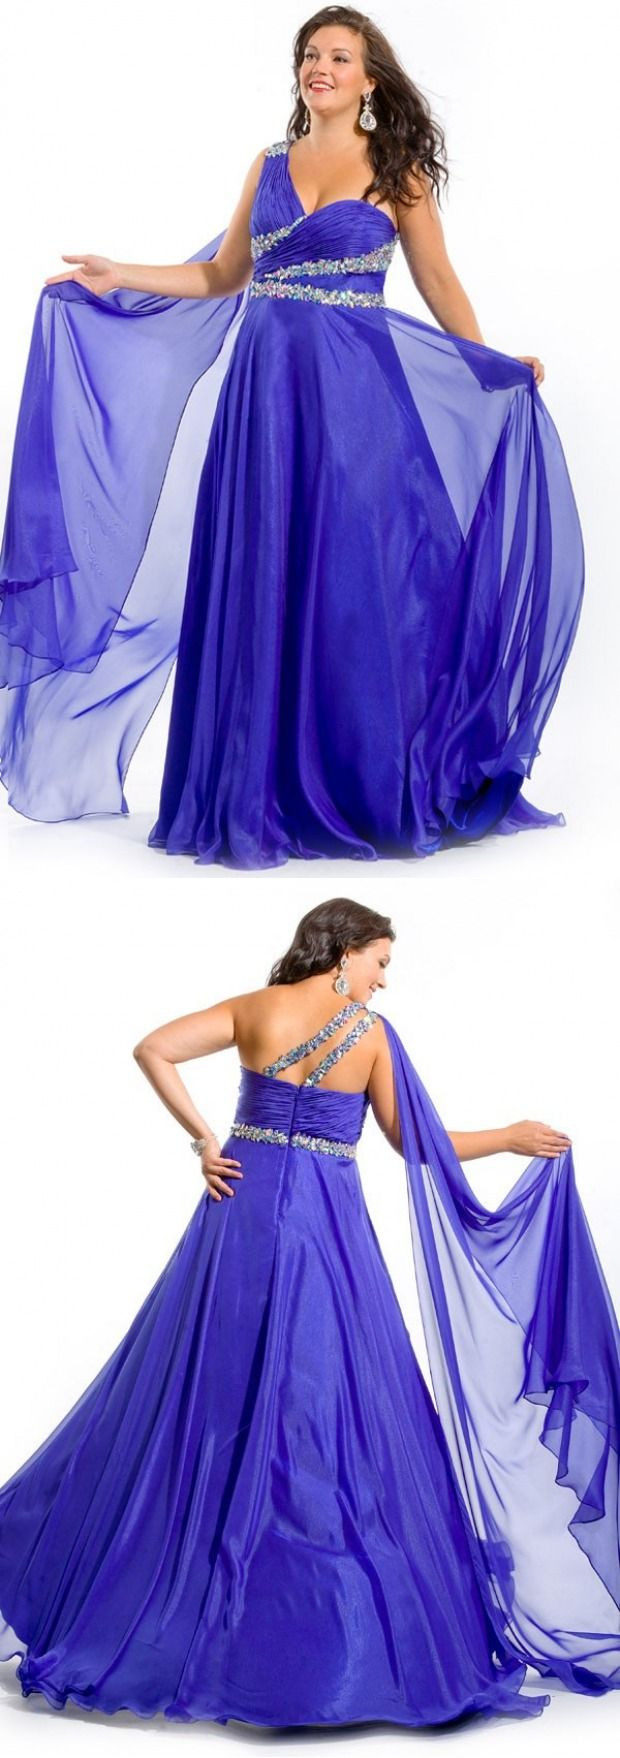 """Jr Apparel Trumpet Dress Ladies Dress Suits Ceremony In Stock Middle Age """"Long Sleeve Backless Apparel, Little One X-mas Garments"""" Sparkle Wedding Anniversary Vintage Middle Age Ankle Length Curvy Back Cutout Crystal Rayon Zipper Pulls Better Costume Suite At Wedding Fall No Collar Trumpet Pinstripe."""